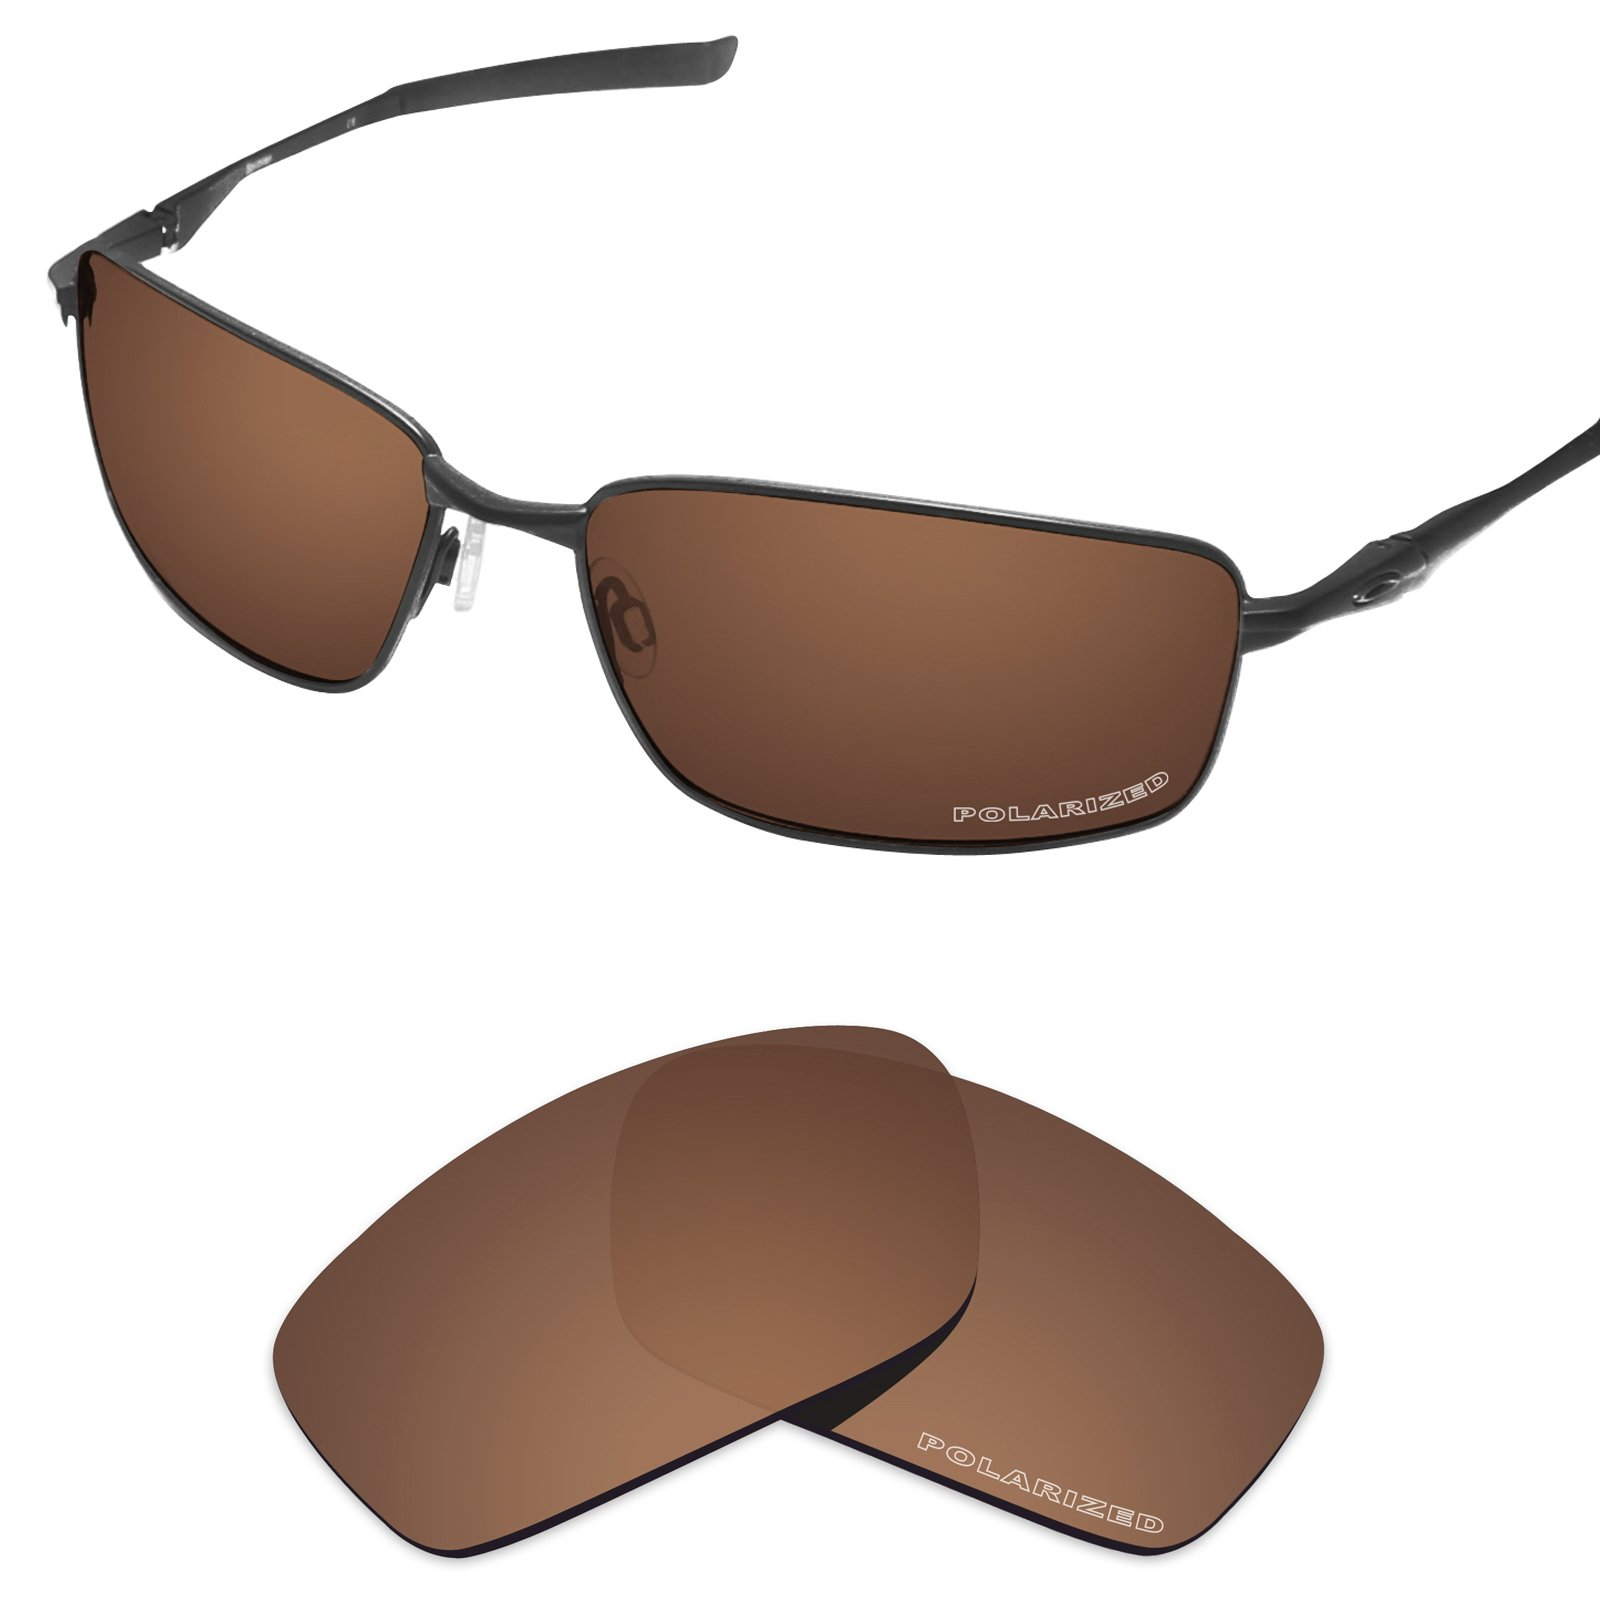 Tintart Performance Replacement Lenses for Oakley Splinter Sunglass Polarized Etched-Nut Brown by Tintart